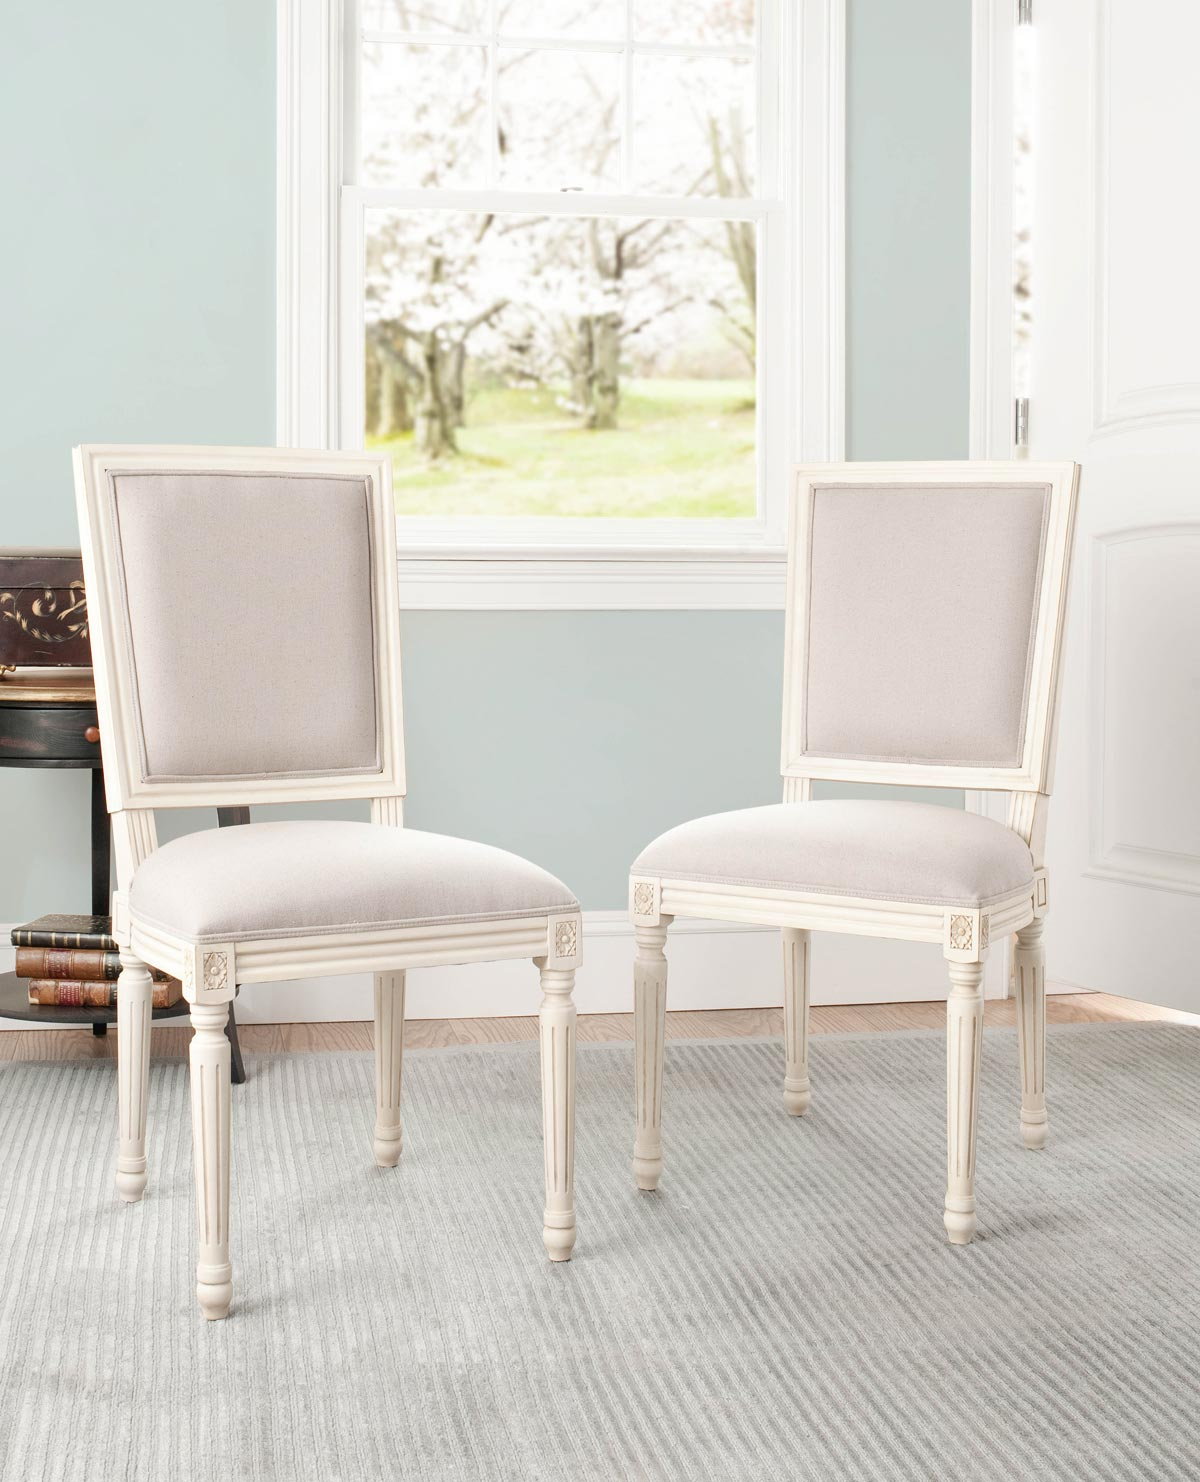 Safavieh Mcr4516c Ashton Side Chair Taupe Set Of Two 801 00